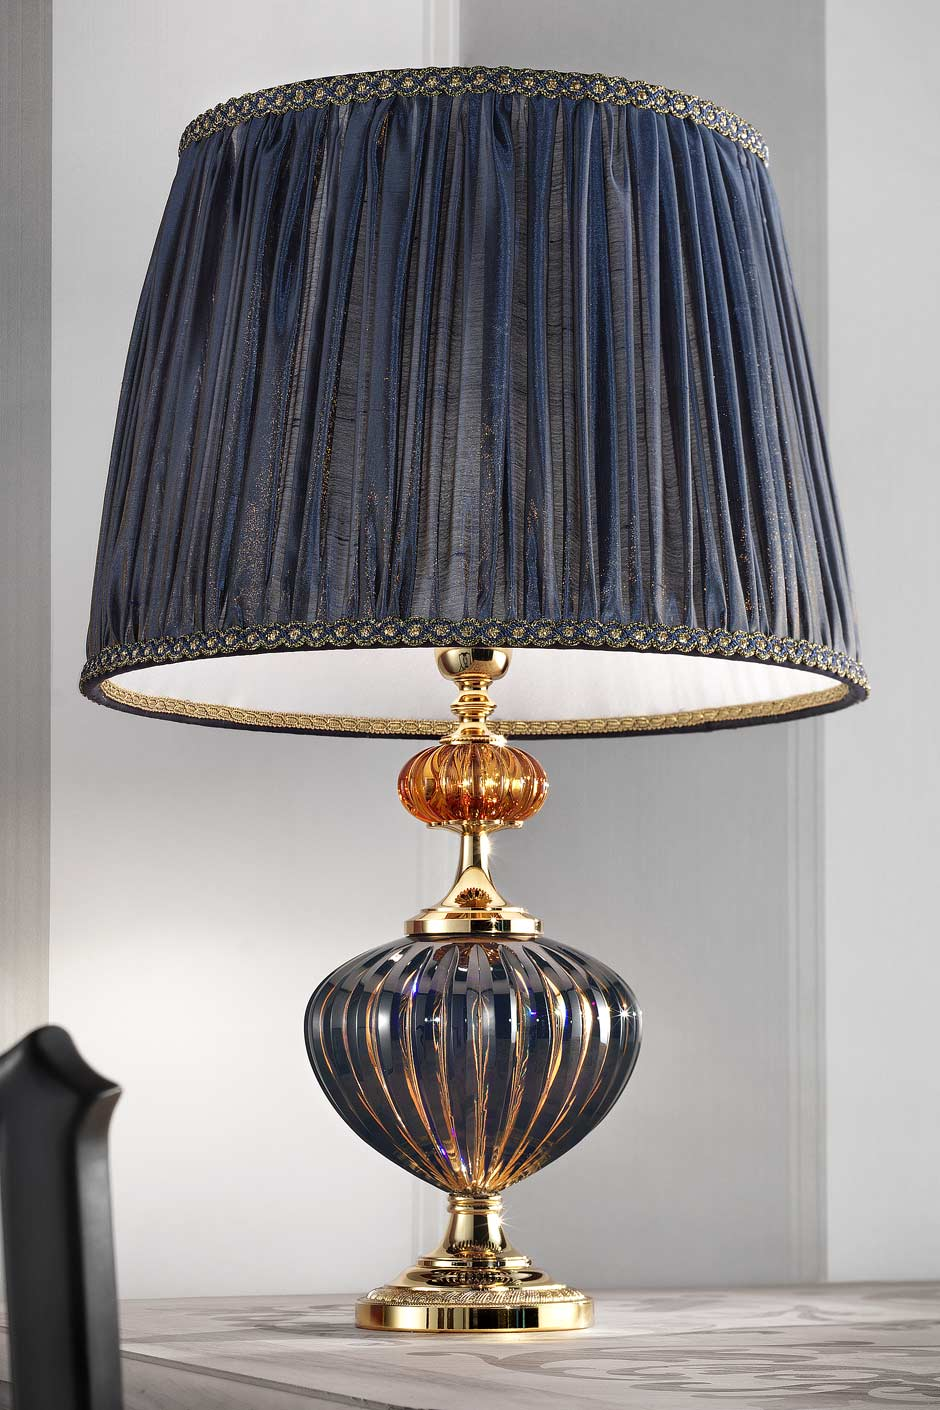 Dark blue and gold murano glass table lamp masiero murano and dark blue and gold murano glass table lamp masiero mozeypictures Image collections